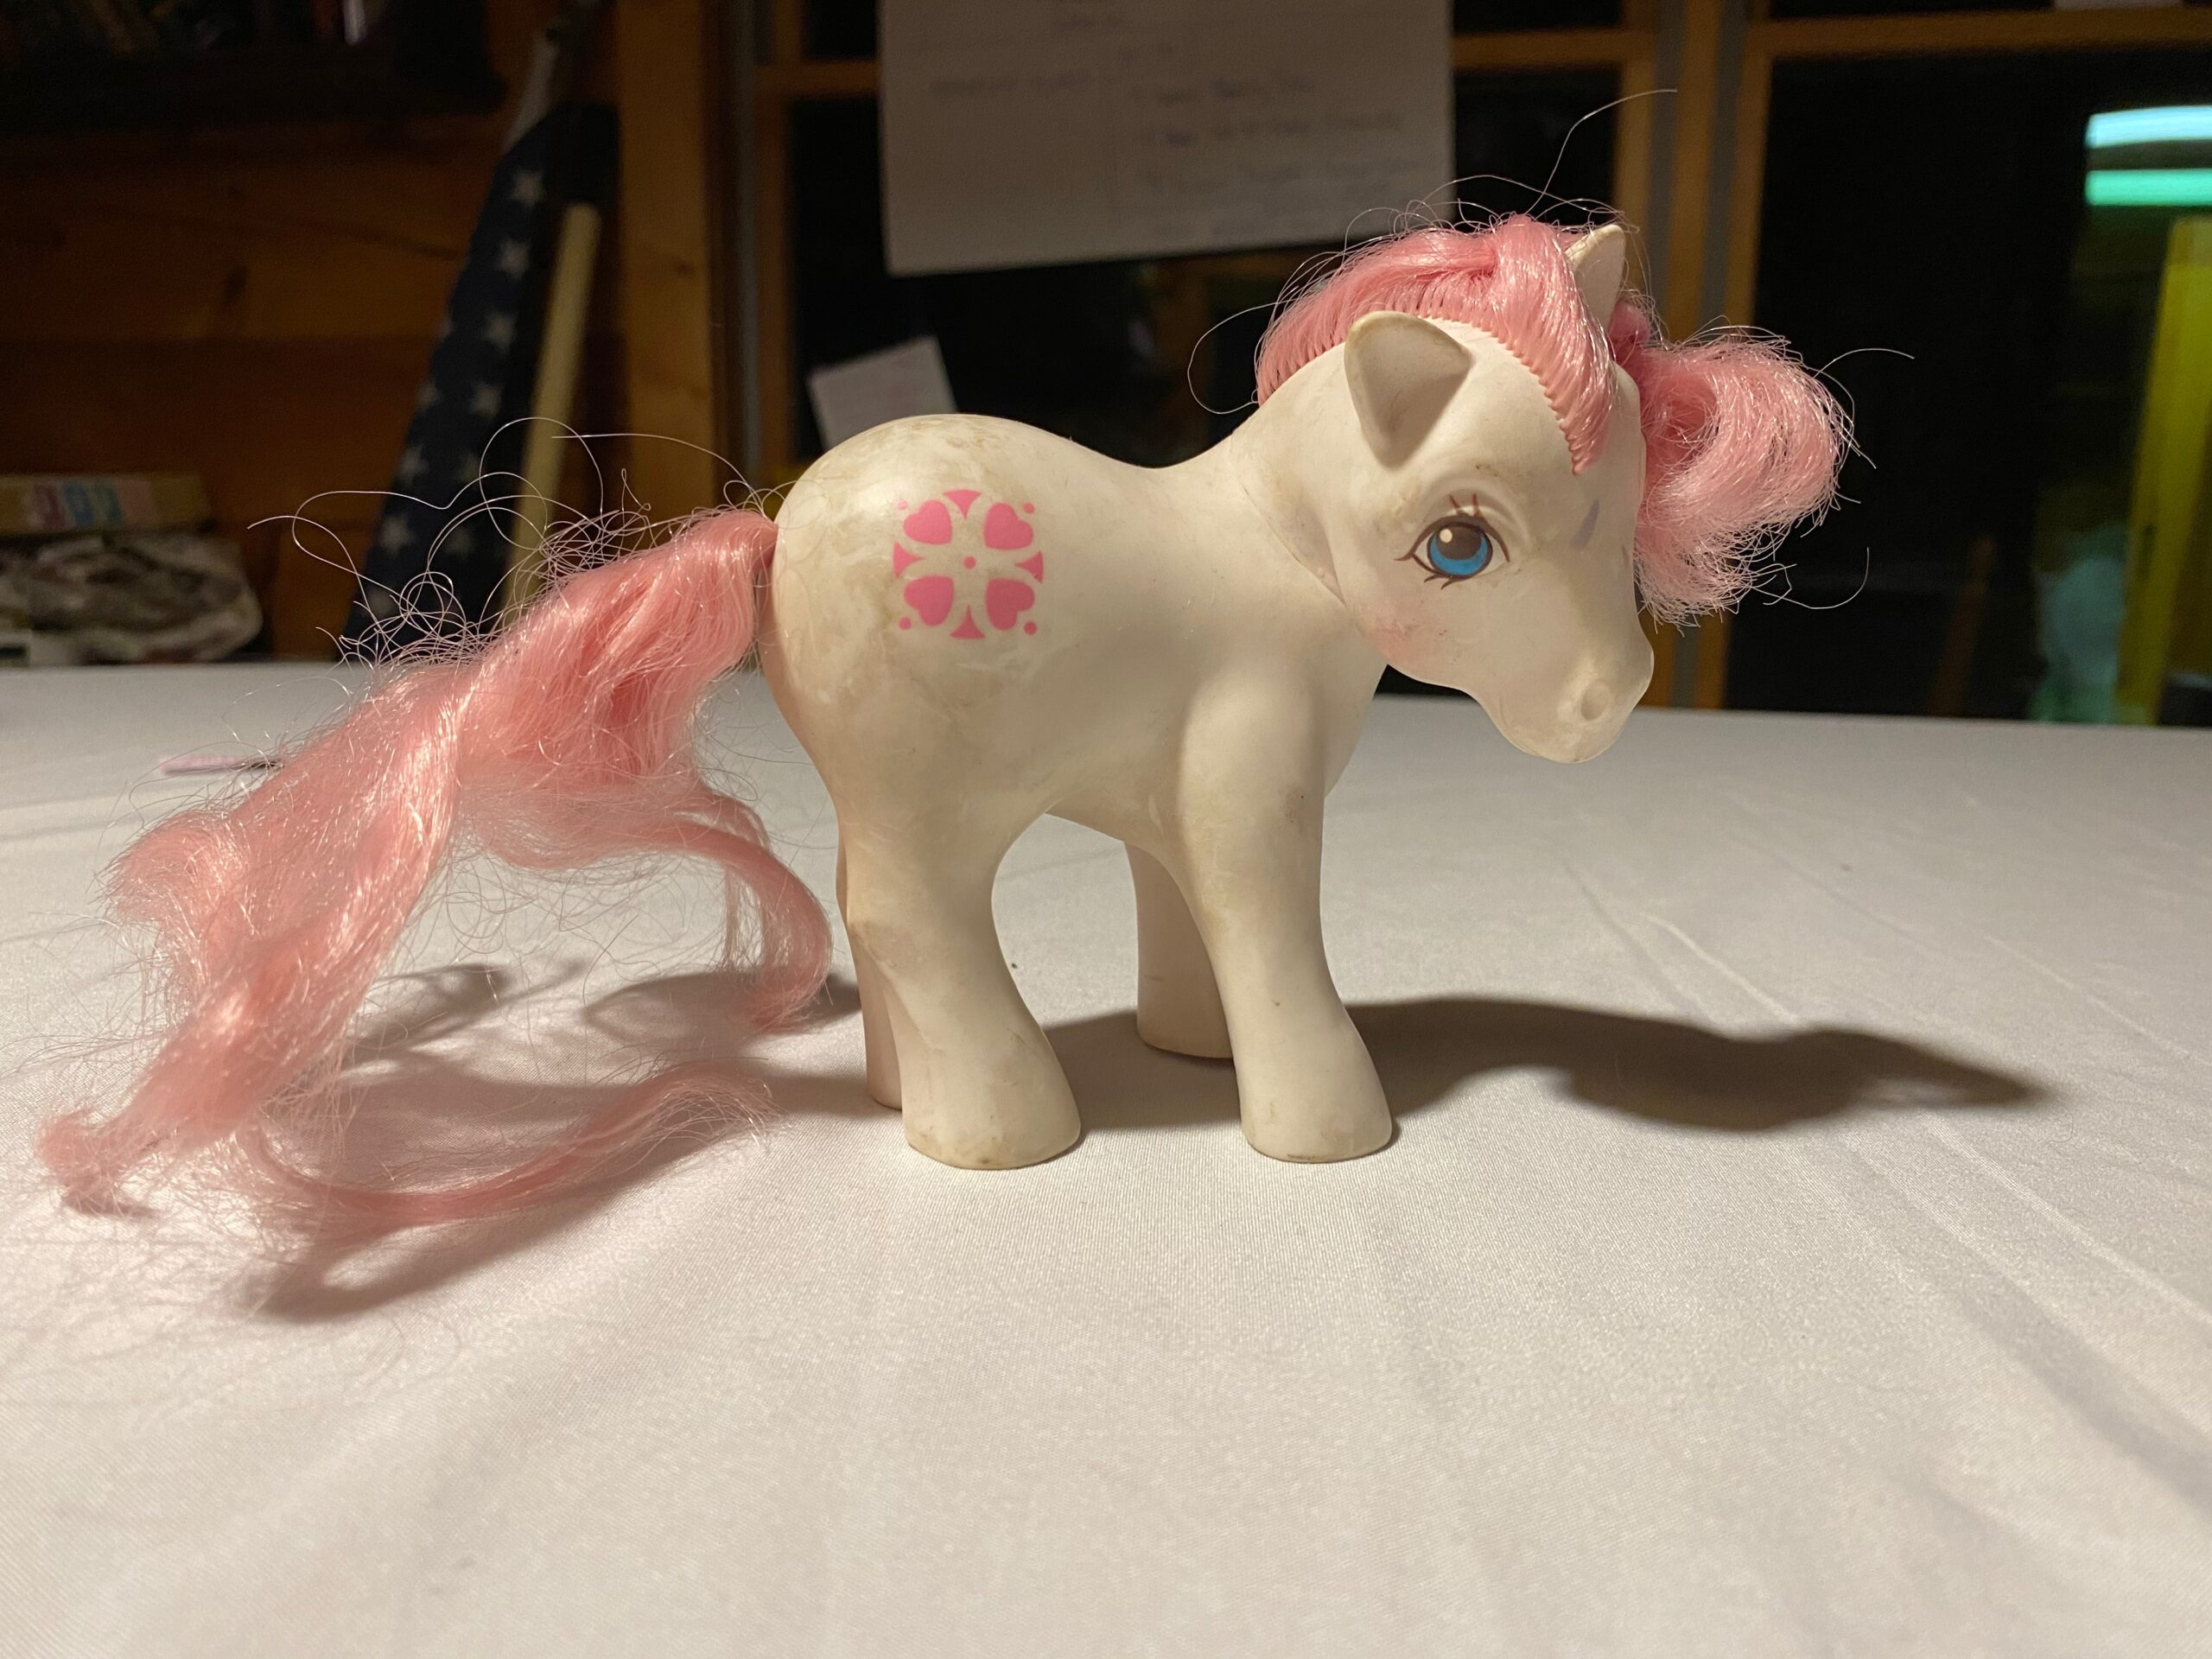 Vintage kawaii 1985 My Little Pony G1 Peachy concave hooves Pretty Parlor Hasbro made in Hong Kong fair condition pink and orange hearts